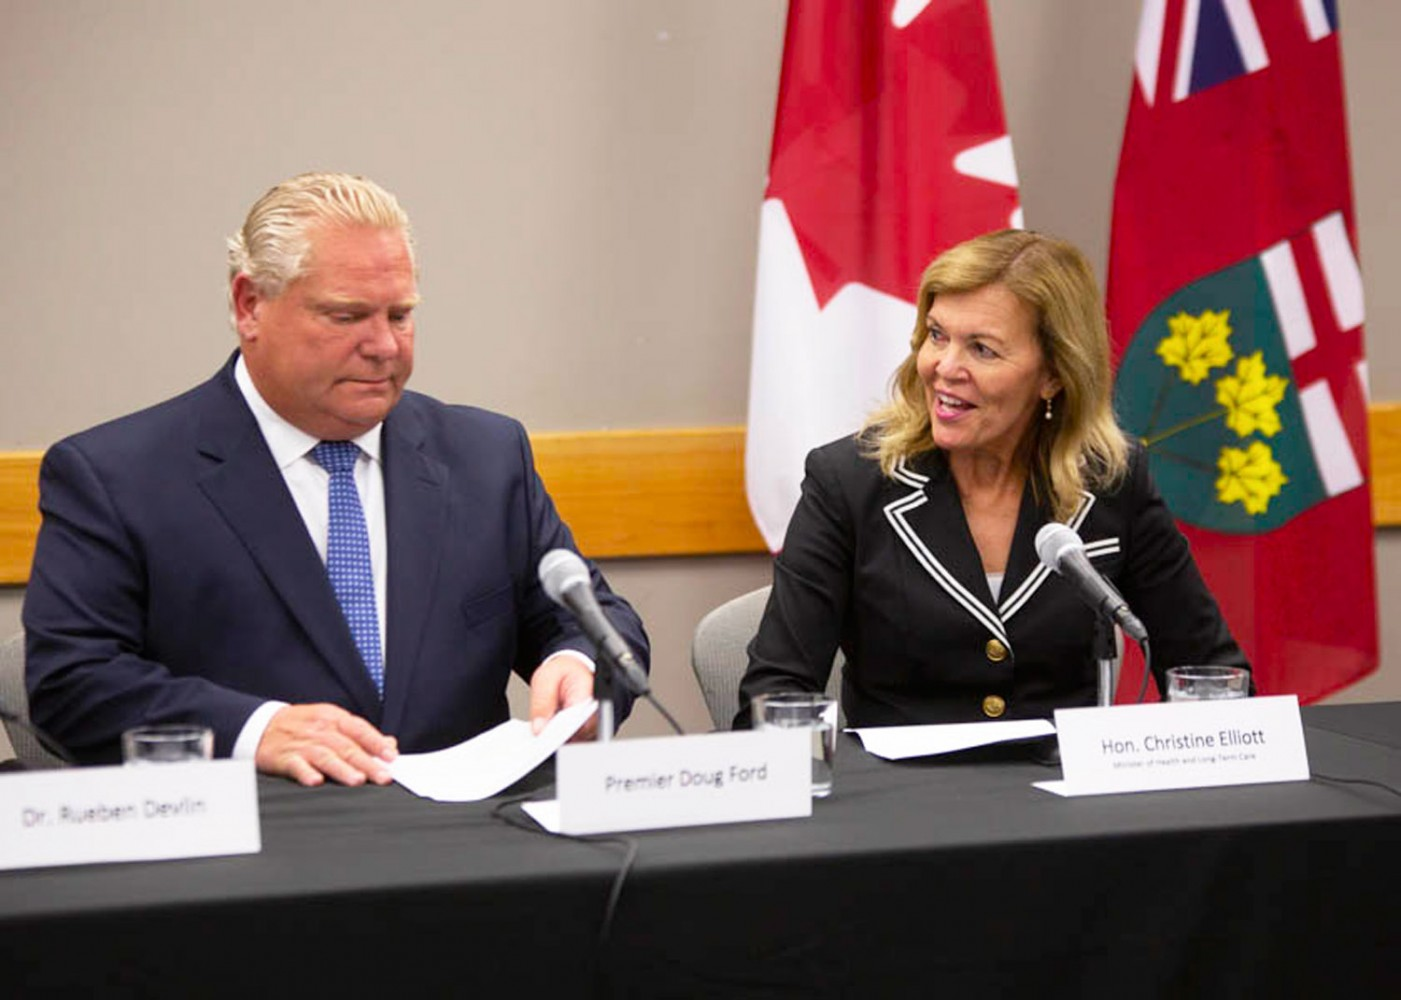 Premier Doug Ford's healthcare announcement offers next to nothing for Brampton